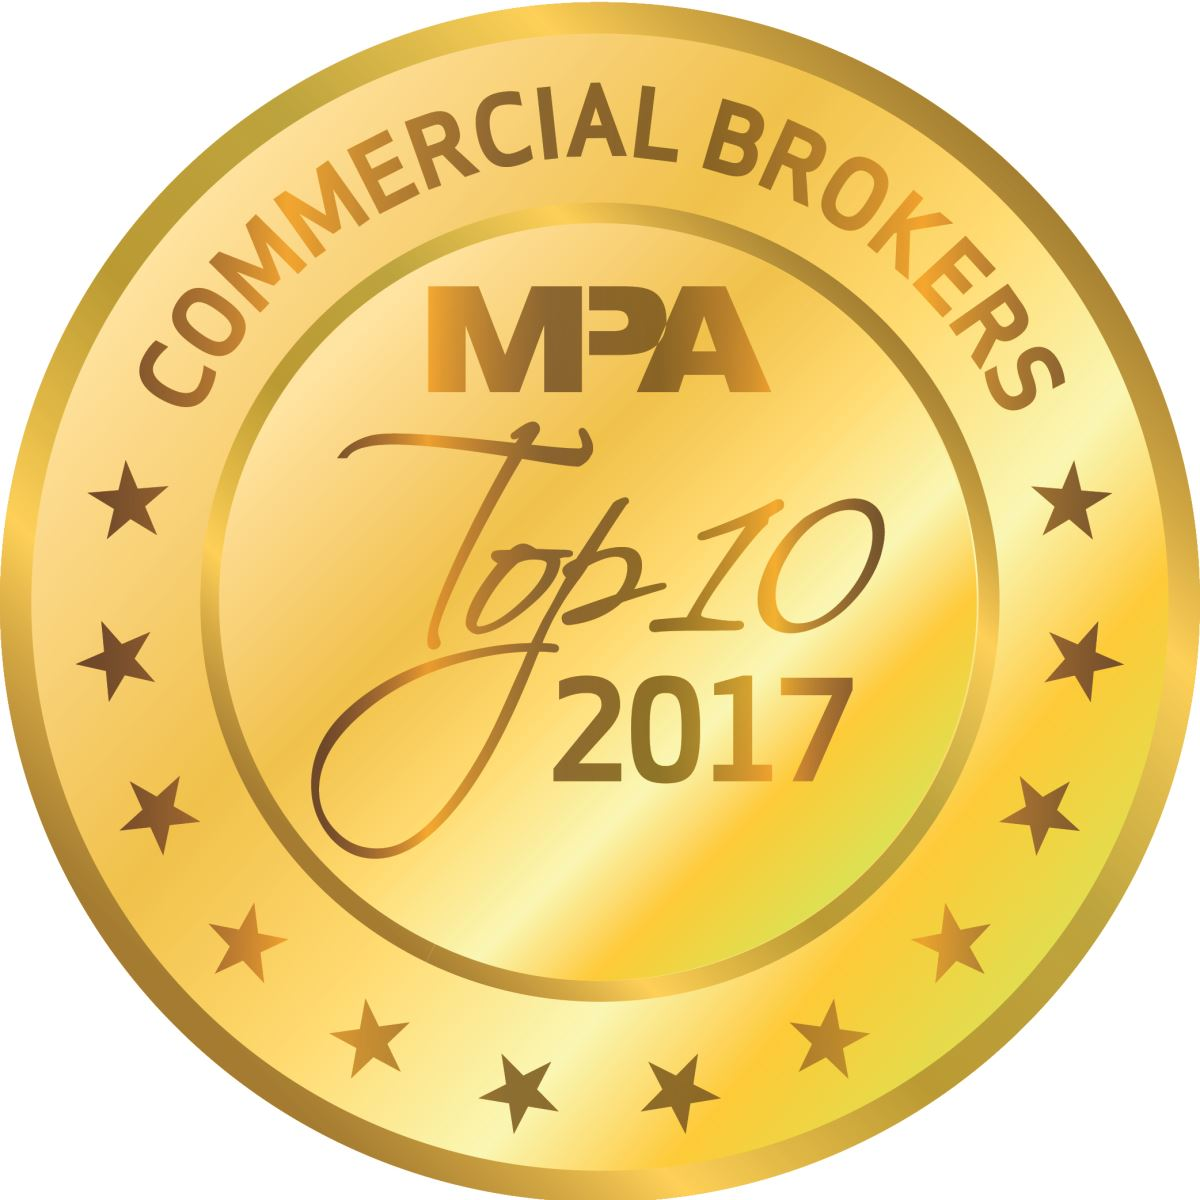 Top 10 Commercial Brokers: Entries now open